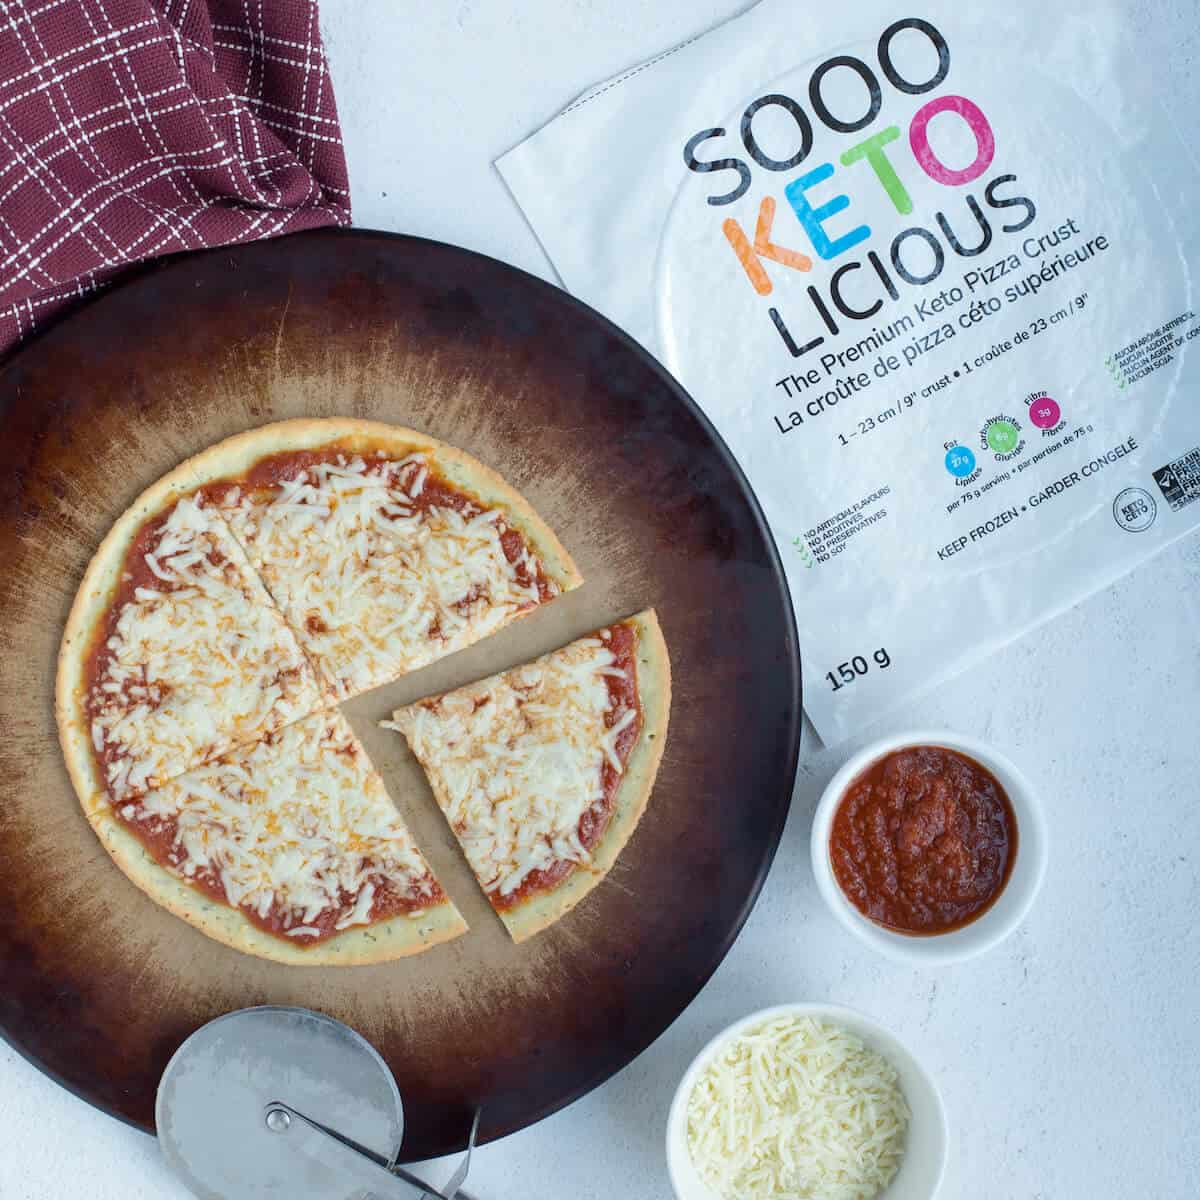 so ketolicious pizza crust